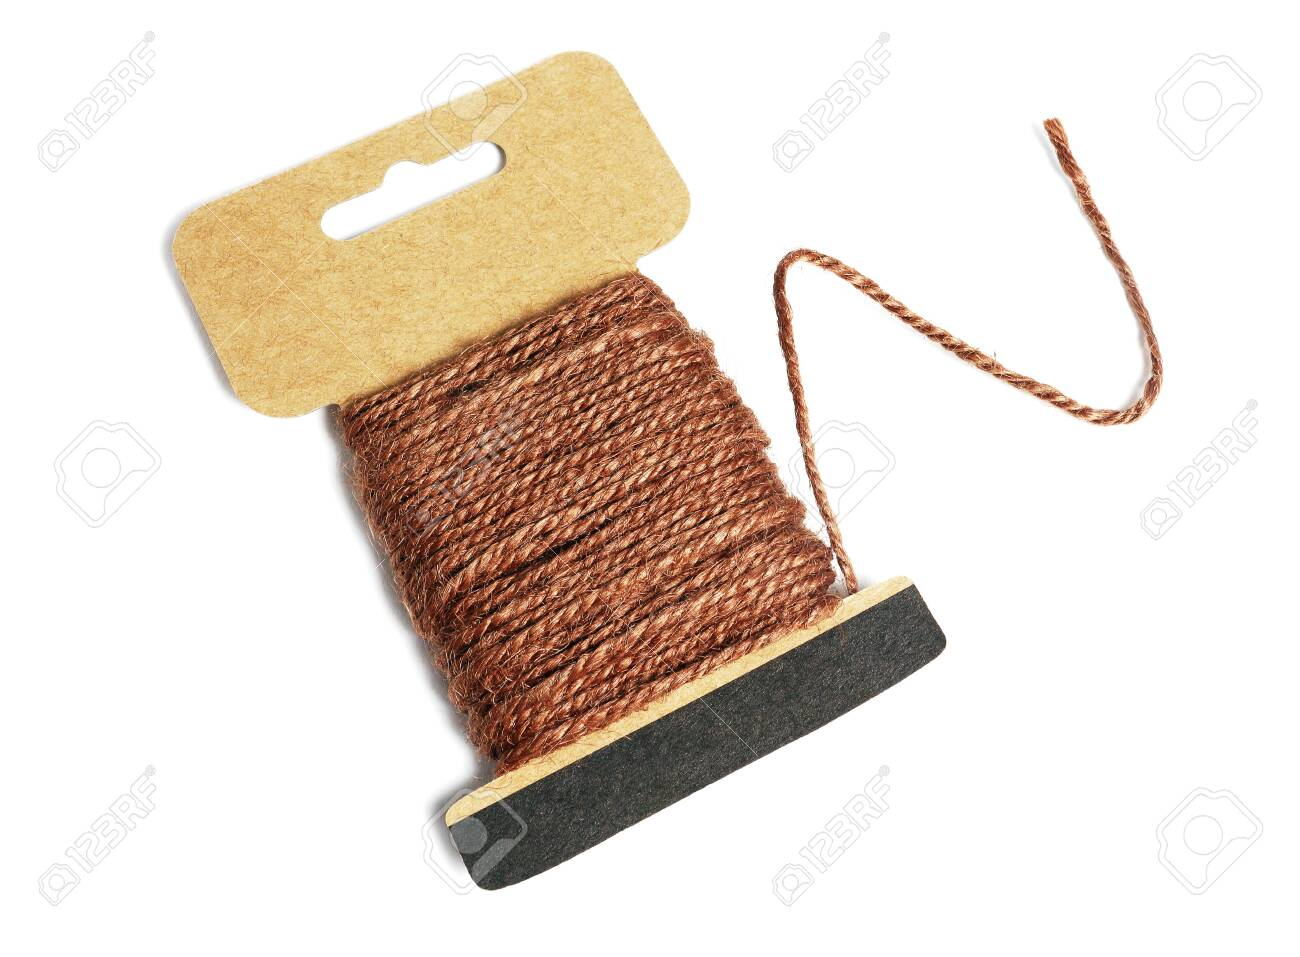 Hemp Rope Wound Up on Card With Loose End on white Background - 150777652